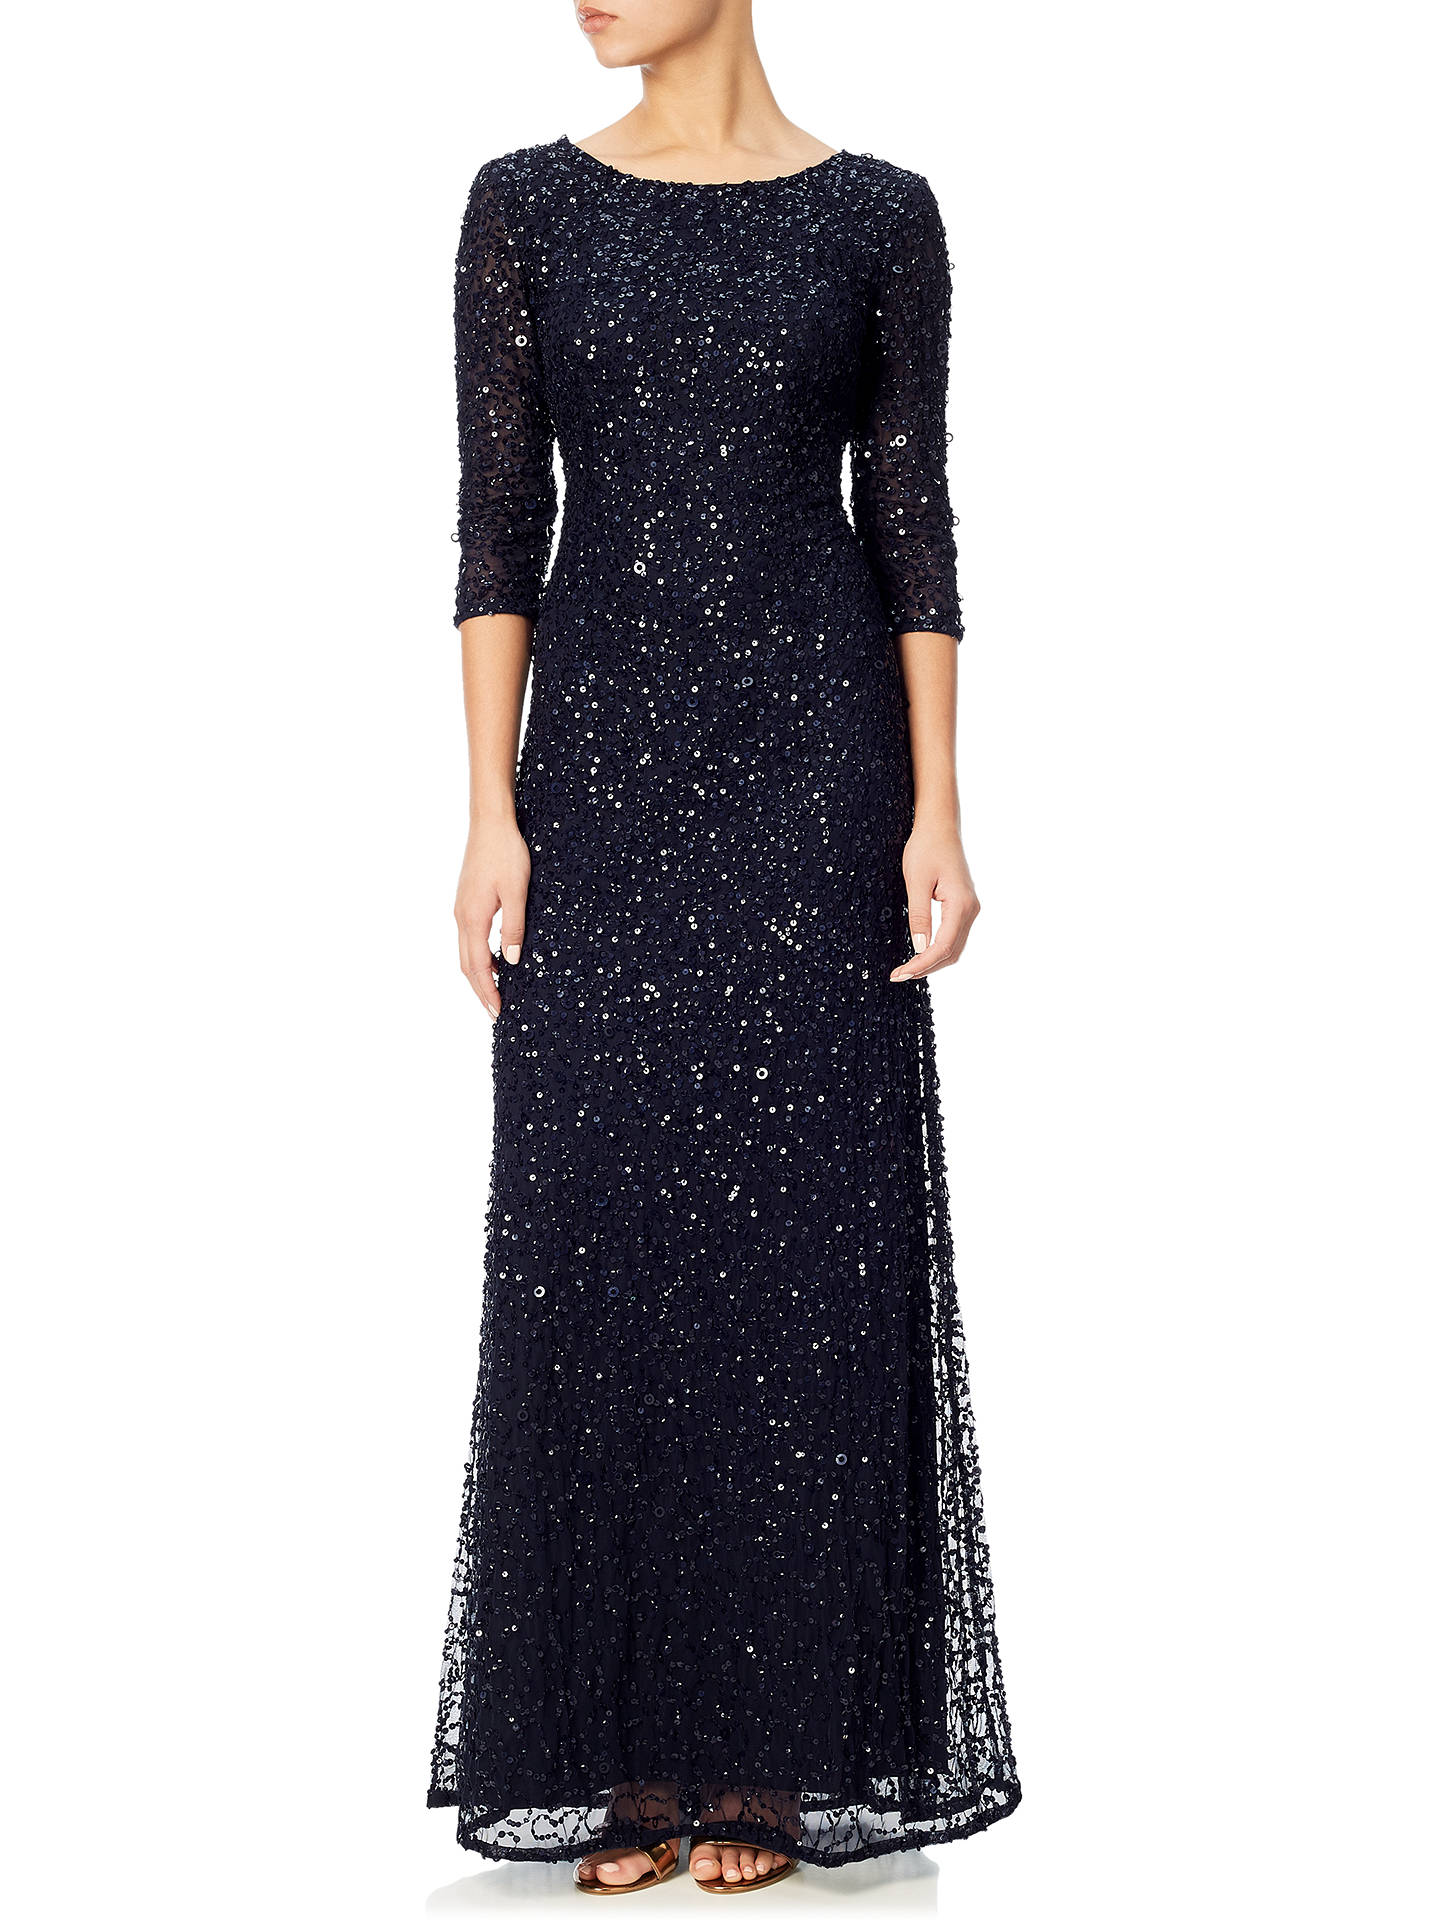 Adrianna Papell 3/4 Sleeve Beaded Mermaid Gown, Navy at John Lewis ...